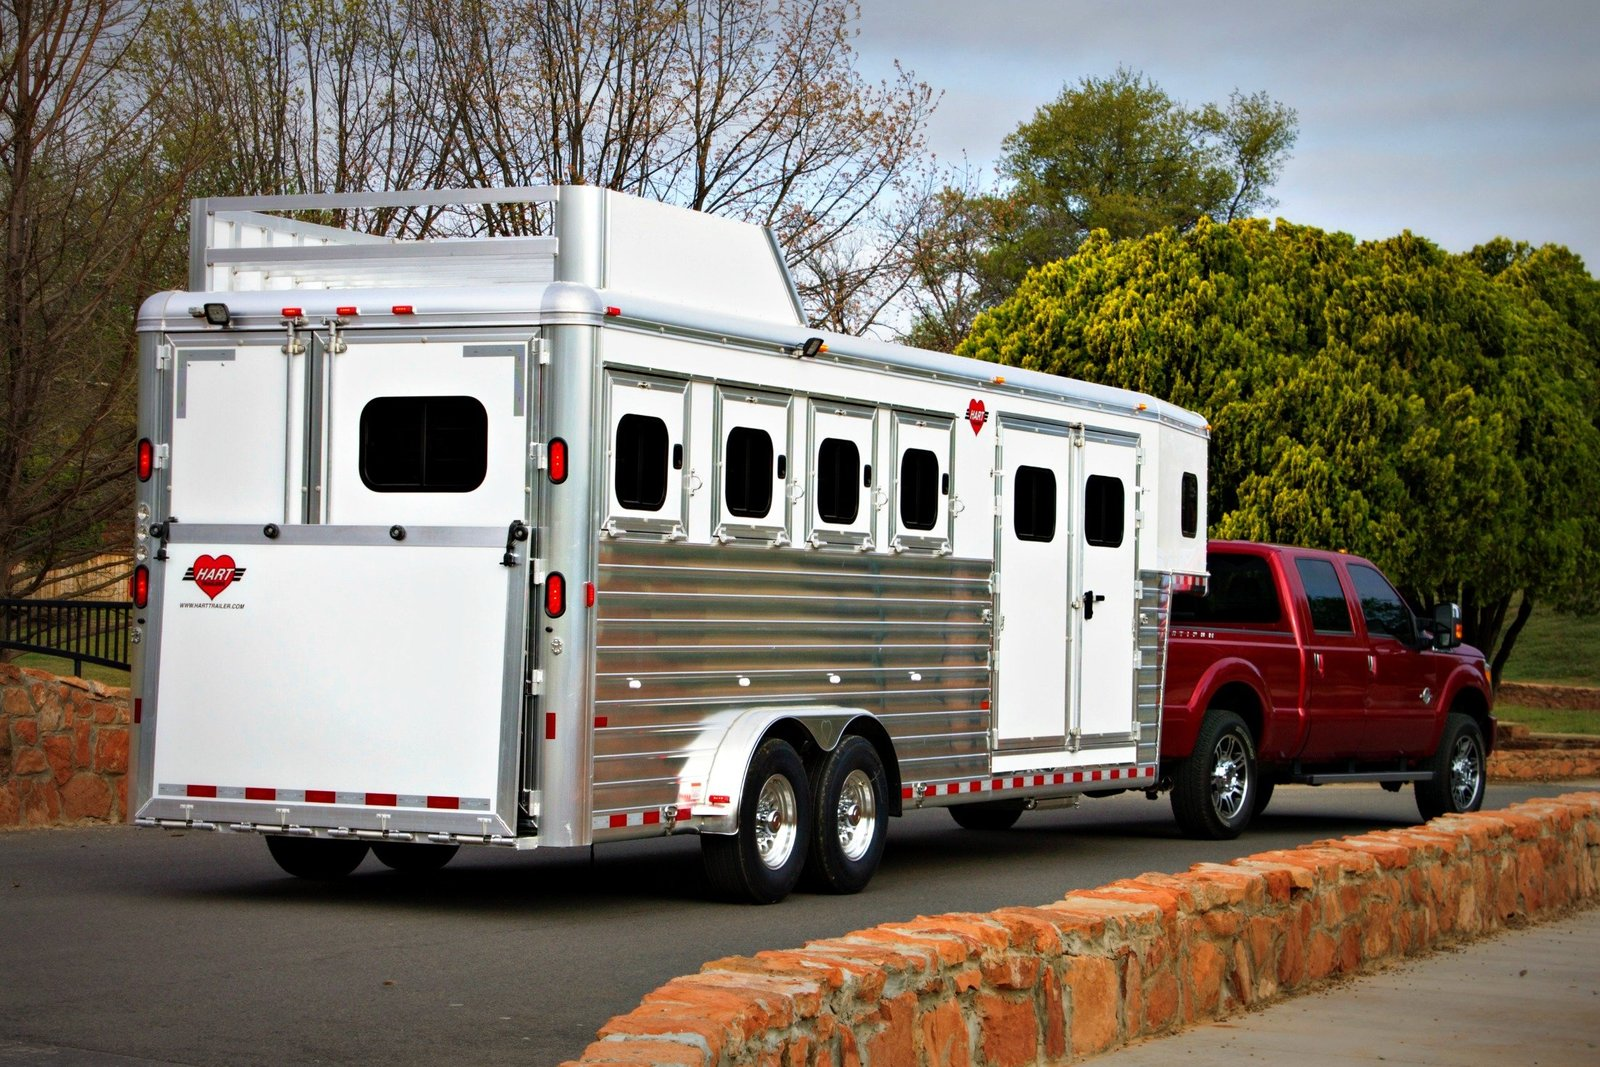 home in the market for a new hart trailer let us help you a dealer perfect for you we have certified hart dealers across the u s and